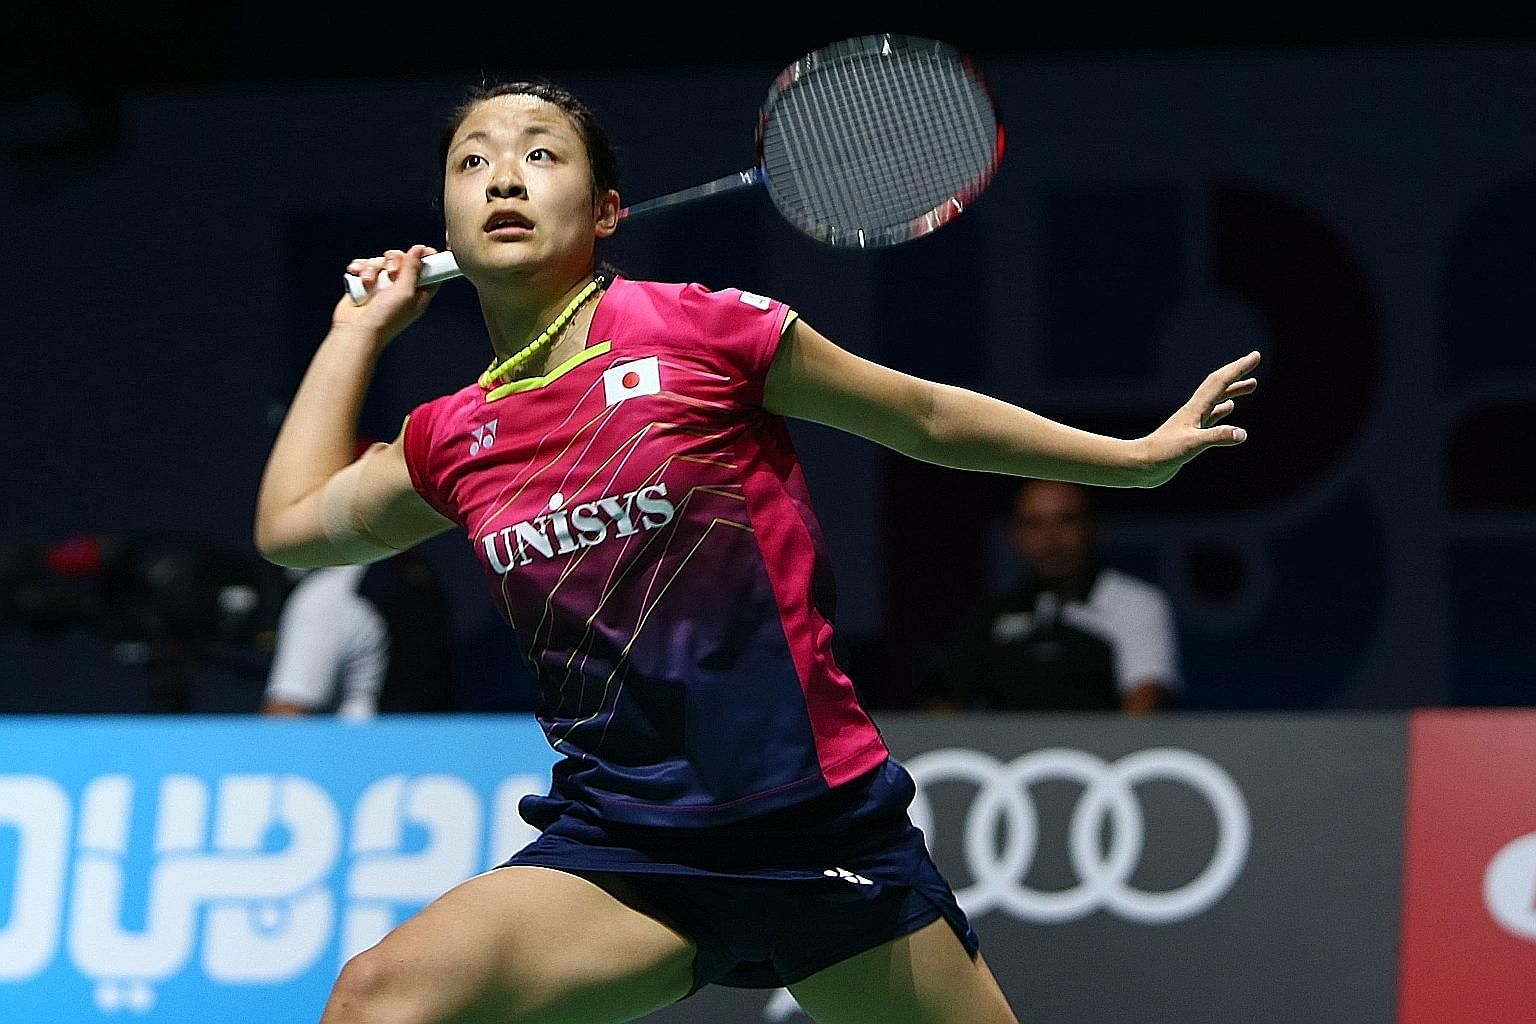 Superseries Finals champion Nozomi Okuhara demands a lot of herself in training and plays just like in competition, says Singapore women's singles player Liang Xiaoyu.